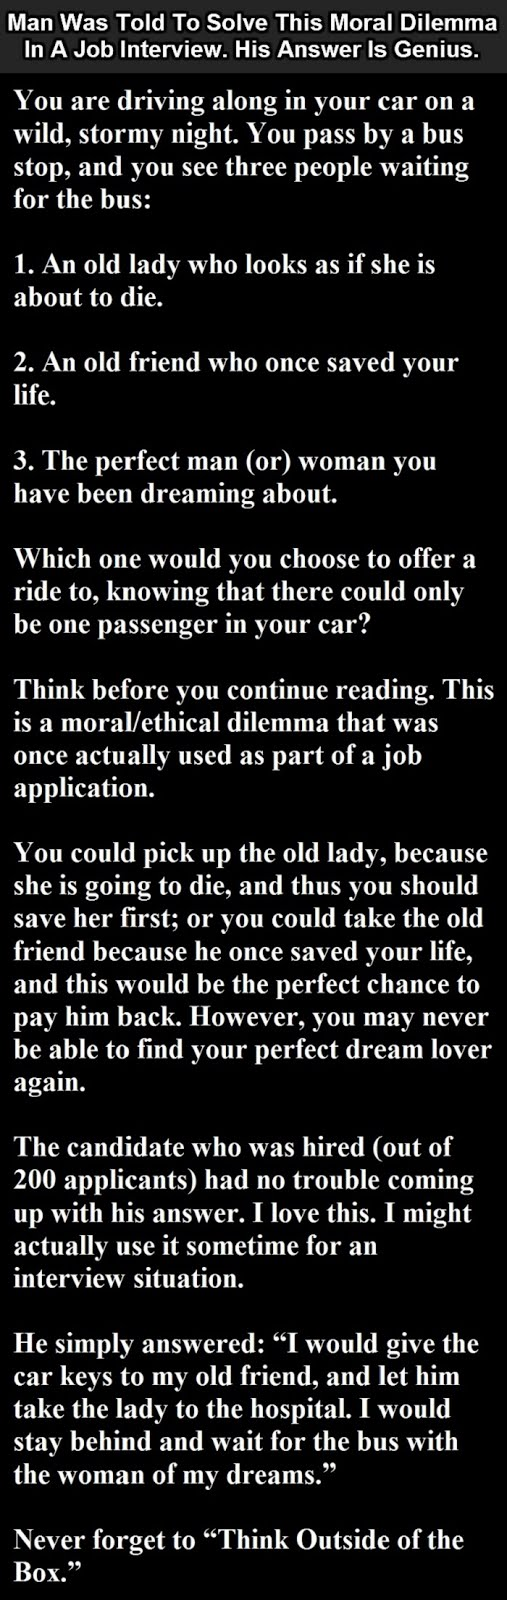 The Best Job Interview Answer Ever